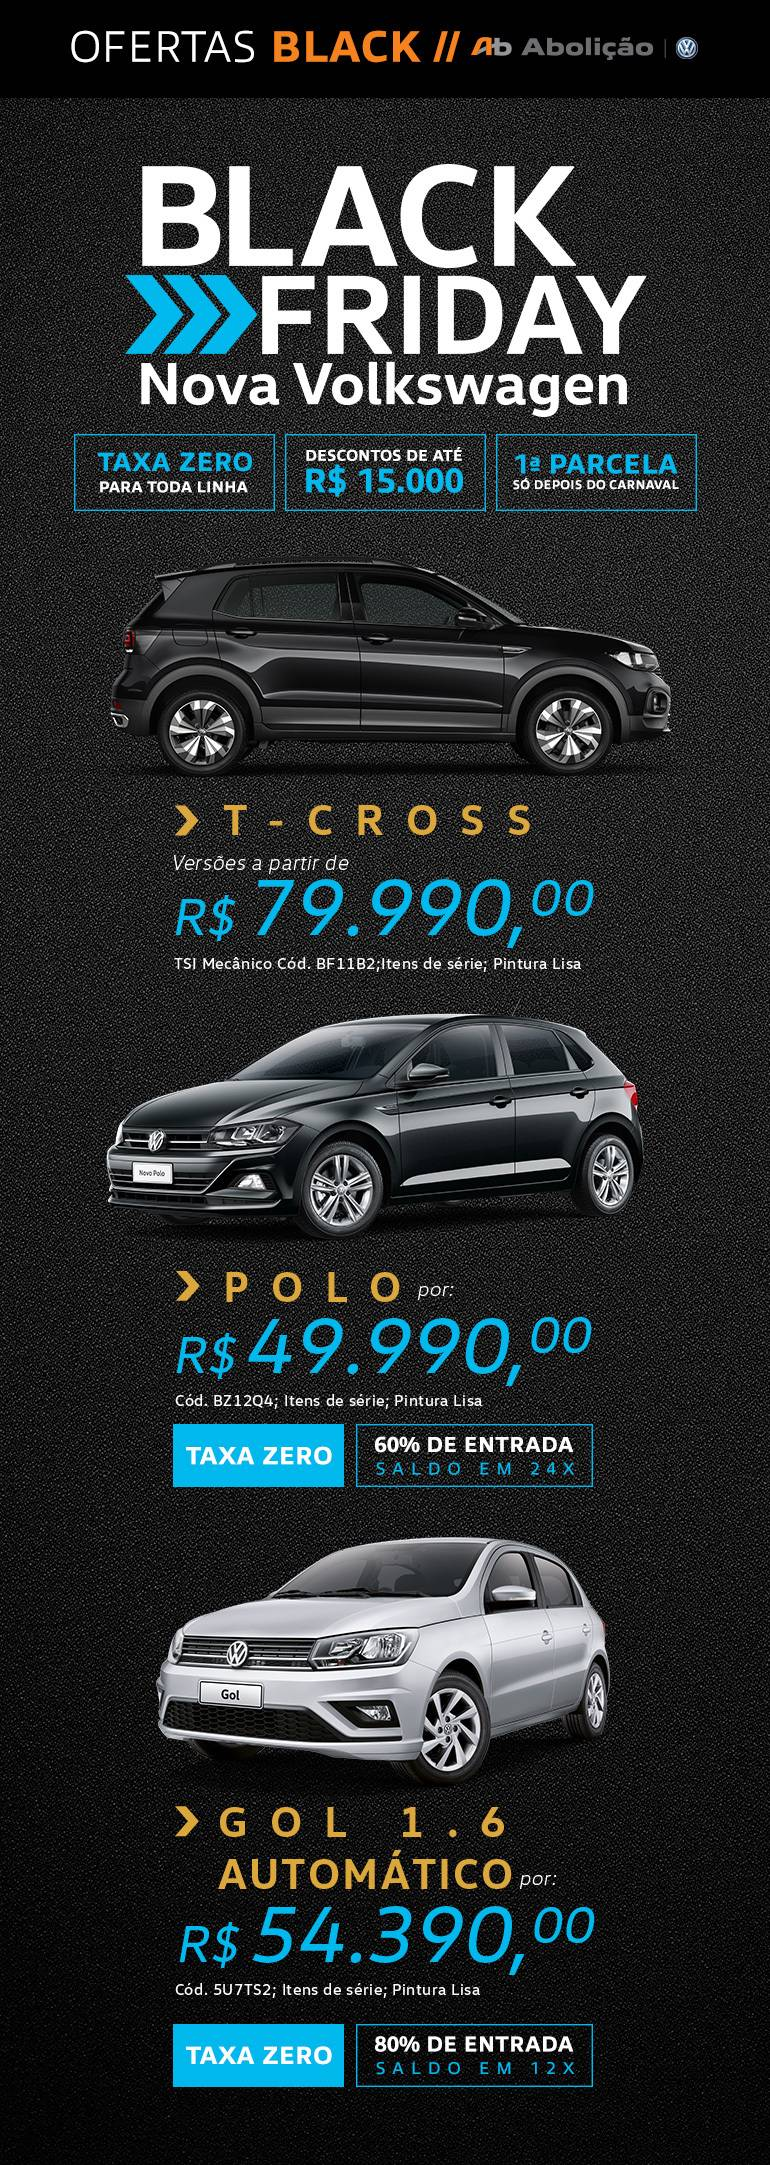 Black Friday - Nova Volkswagen